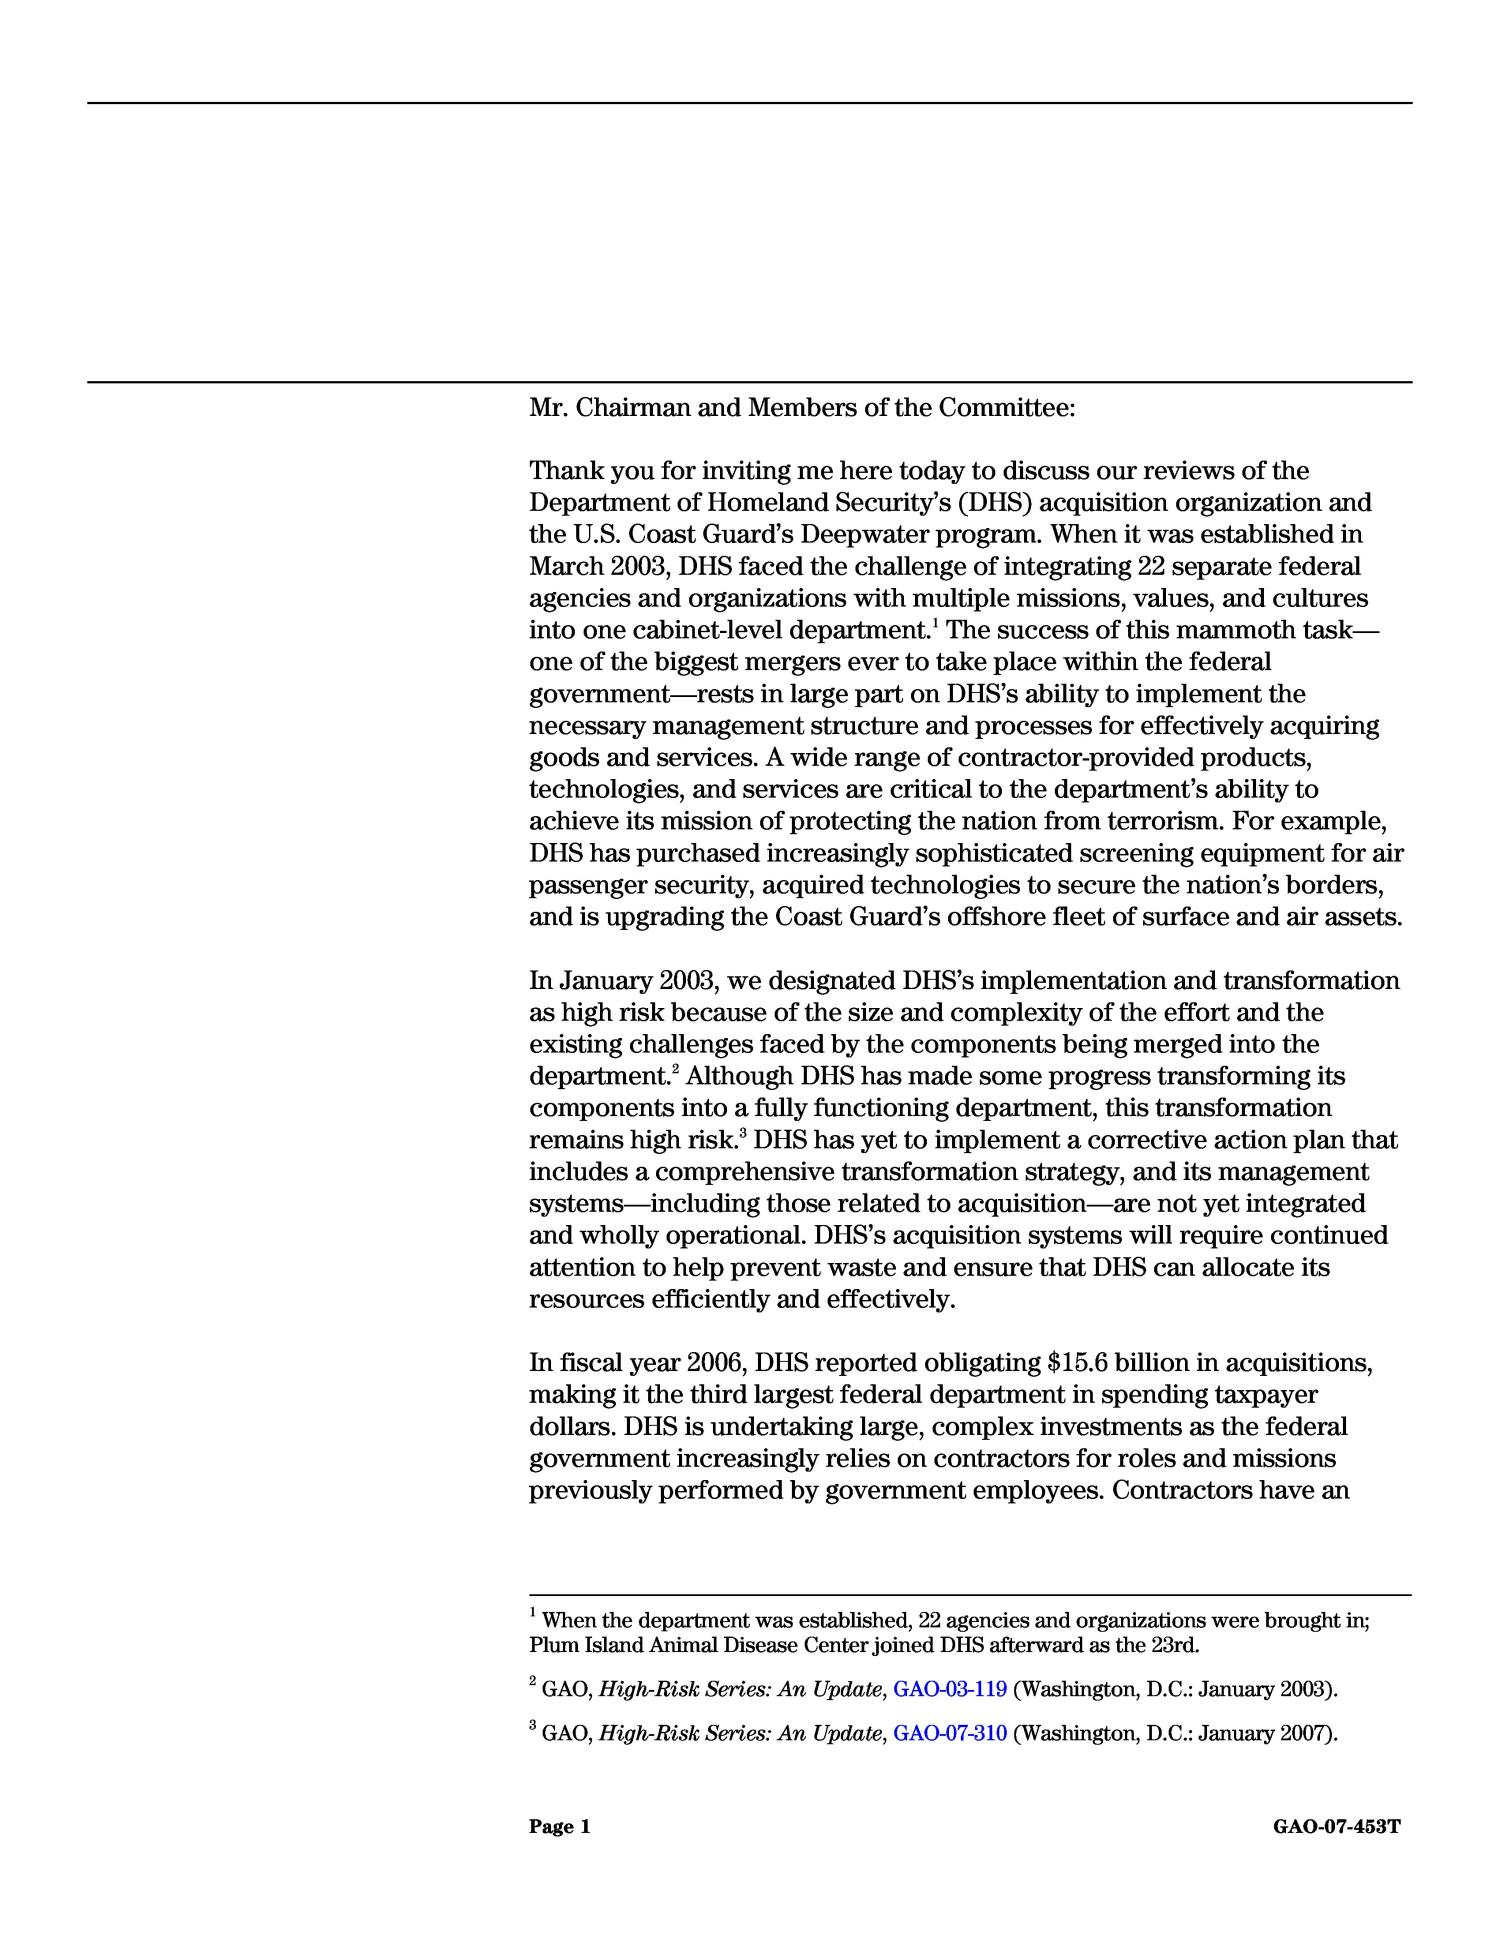 Homeland Security: Observations on the Department of Homeland Security's Acquisition Organization and on the Coast Guard's Deepwater Program                                                                                                      [Sequence #]: 3 of 22